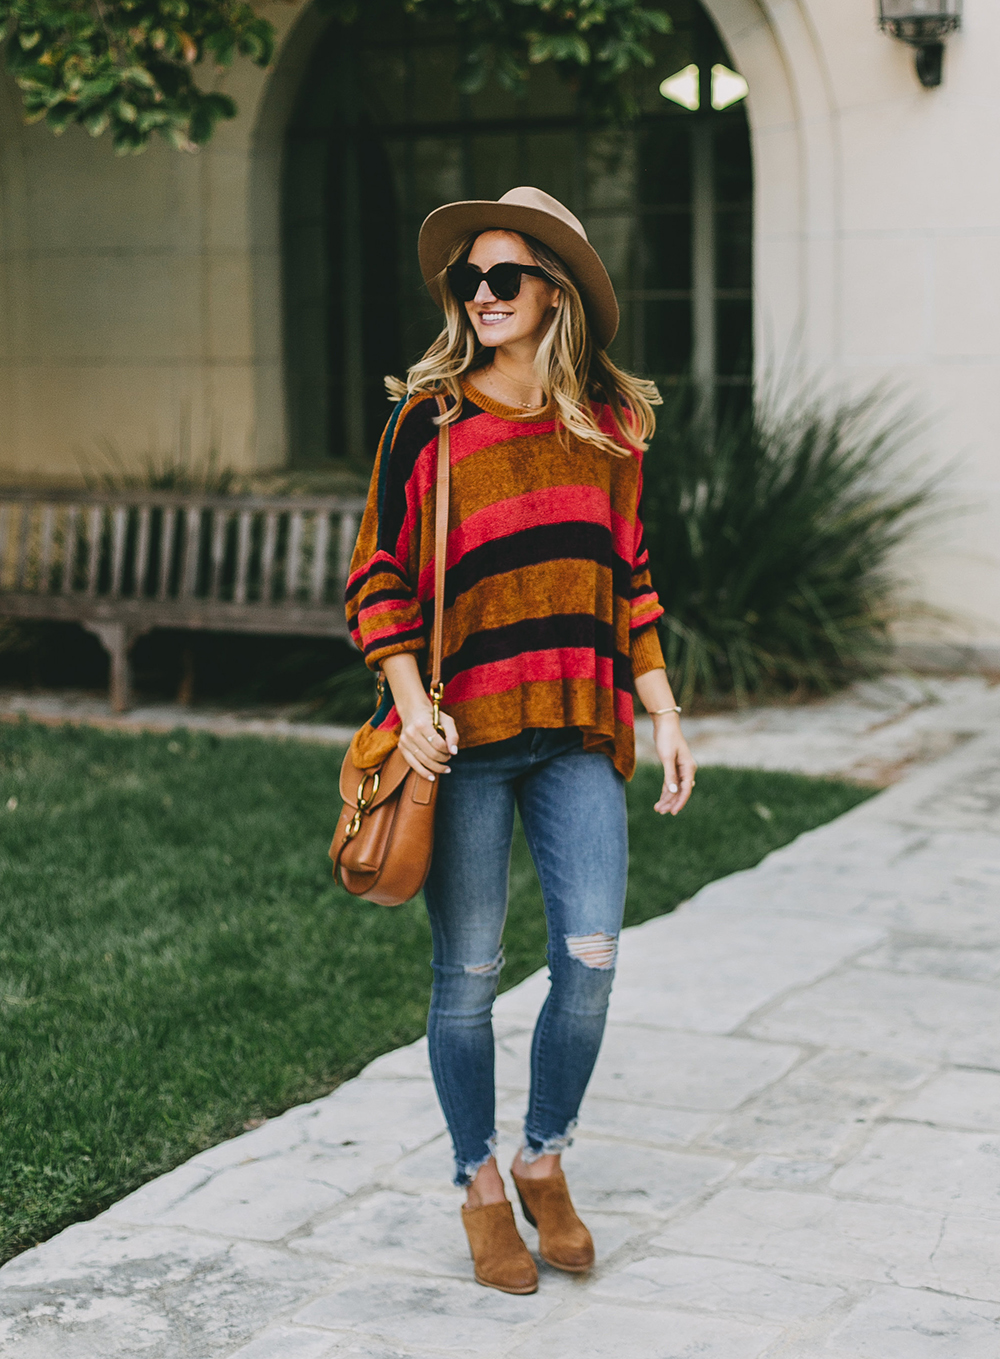 livvyland-blog-olivia-watson-austin-texas-fashion-blogger-free-people-oversize-striped-sweater-boho-chic-3